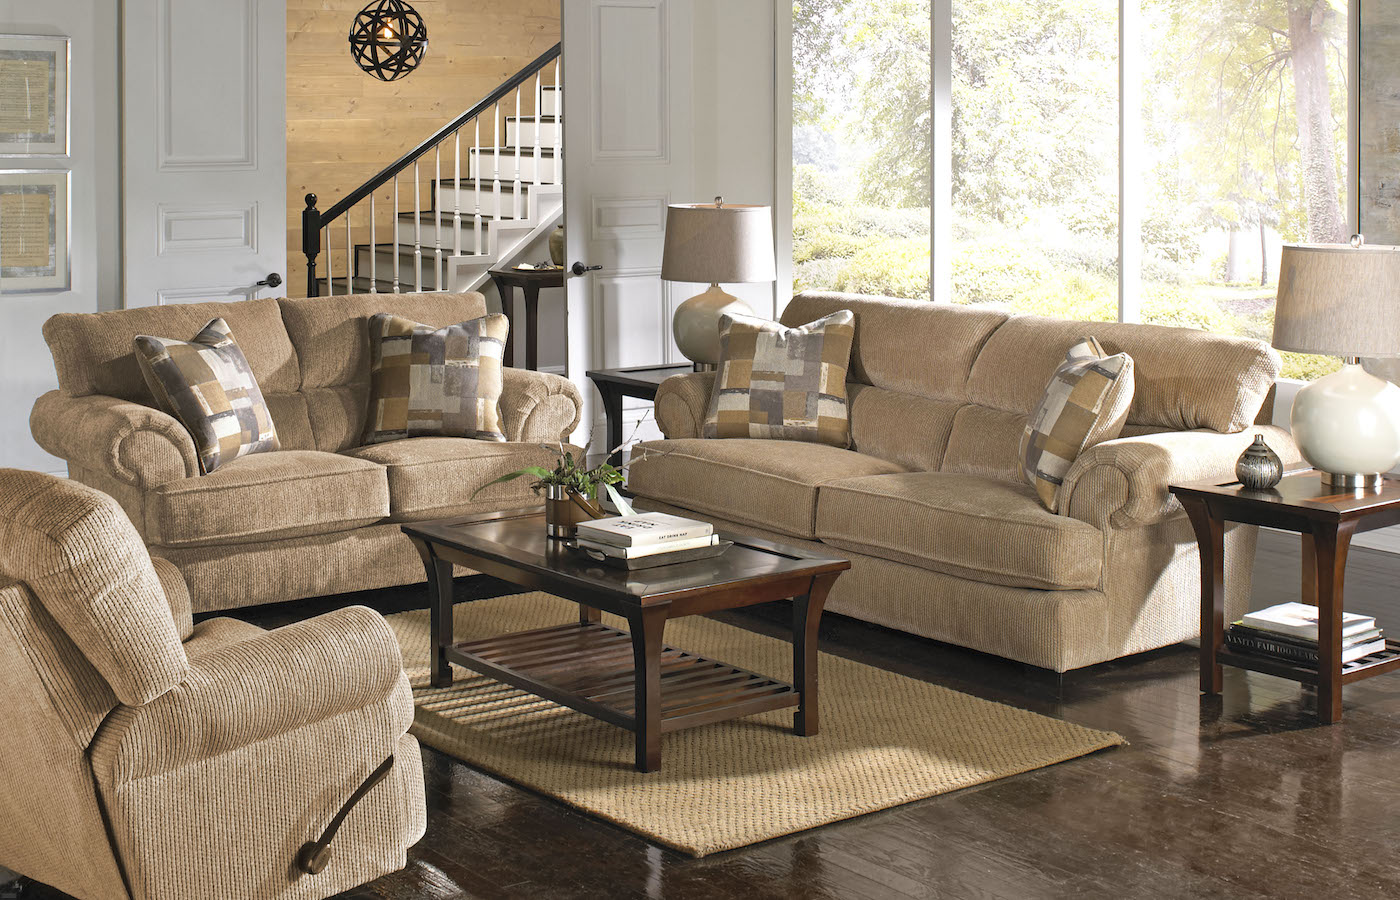 Wondrous Hayden 4277 Sofa Collection Sofas And Sectionals Gmtry Best Dining Table And Chair Ideas Images Gmtryco